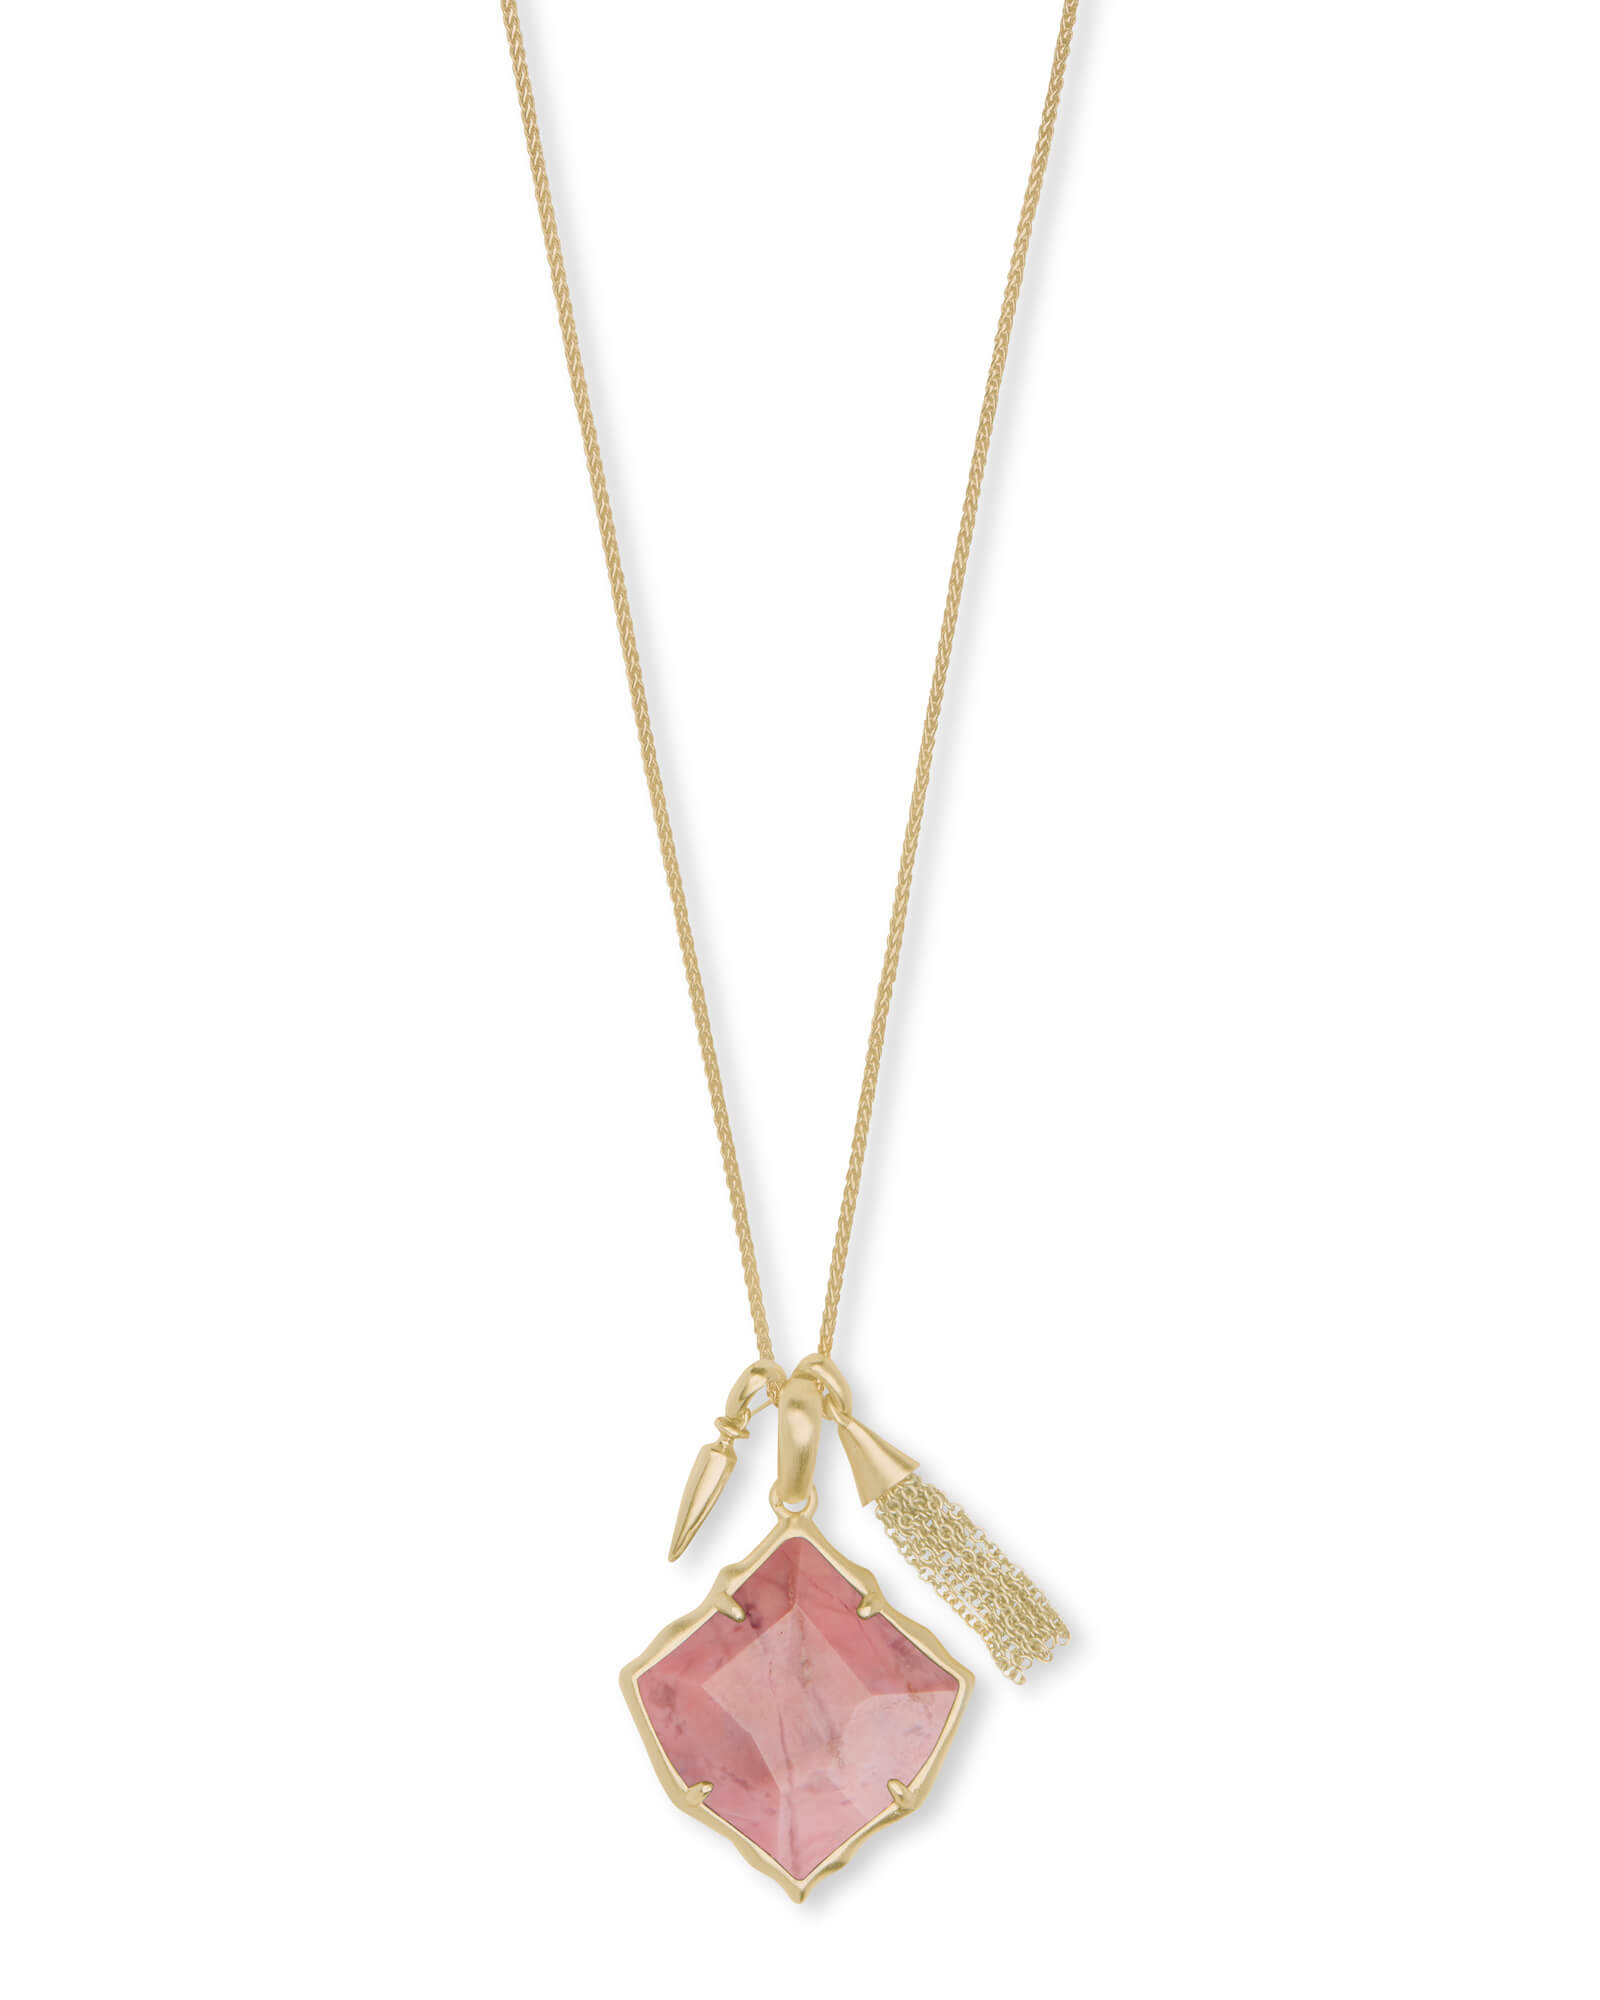 Arlet Gold Pendant Necklace in Pink Rhodonite